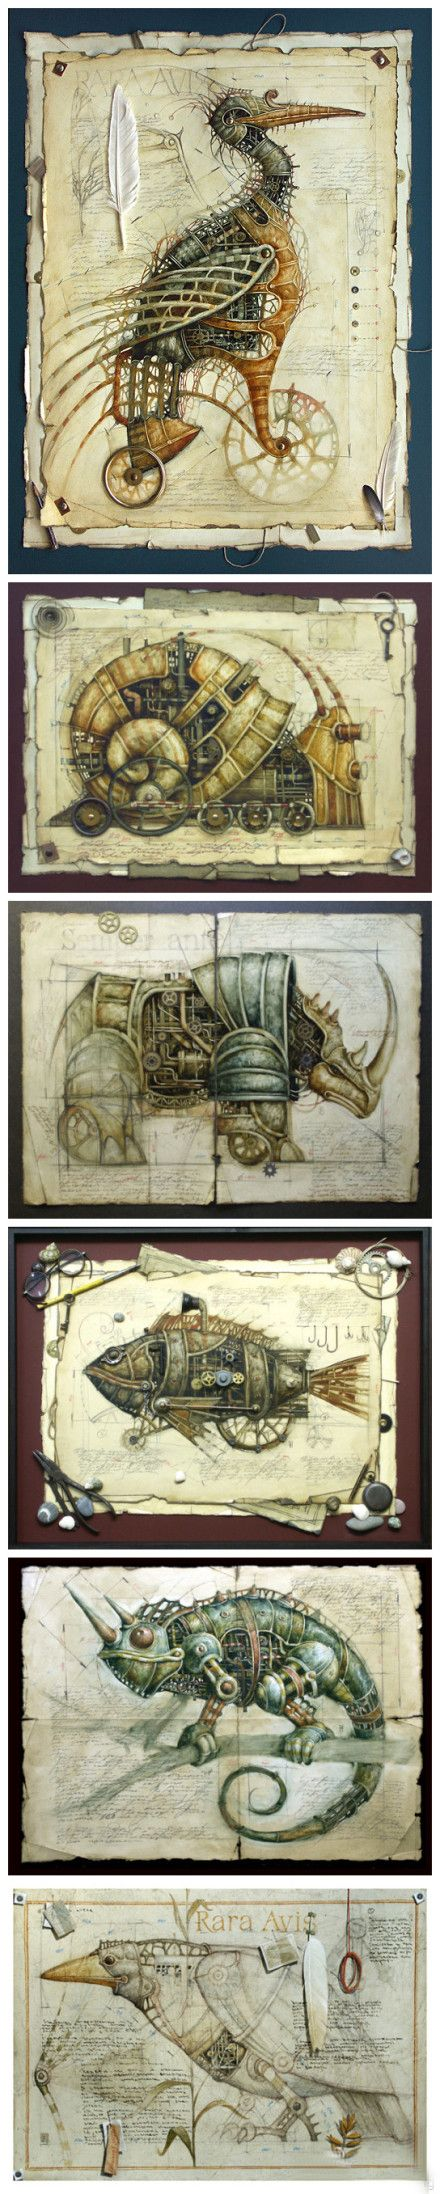 Beautiful artwork of steampunk animals. Starting point for maybe a middle school art project.